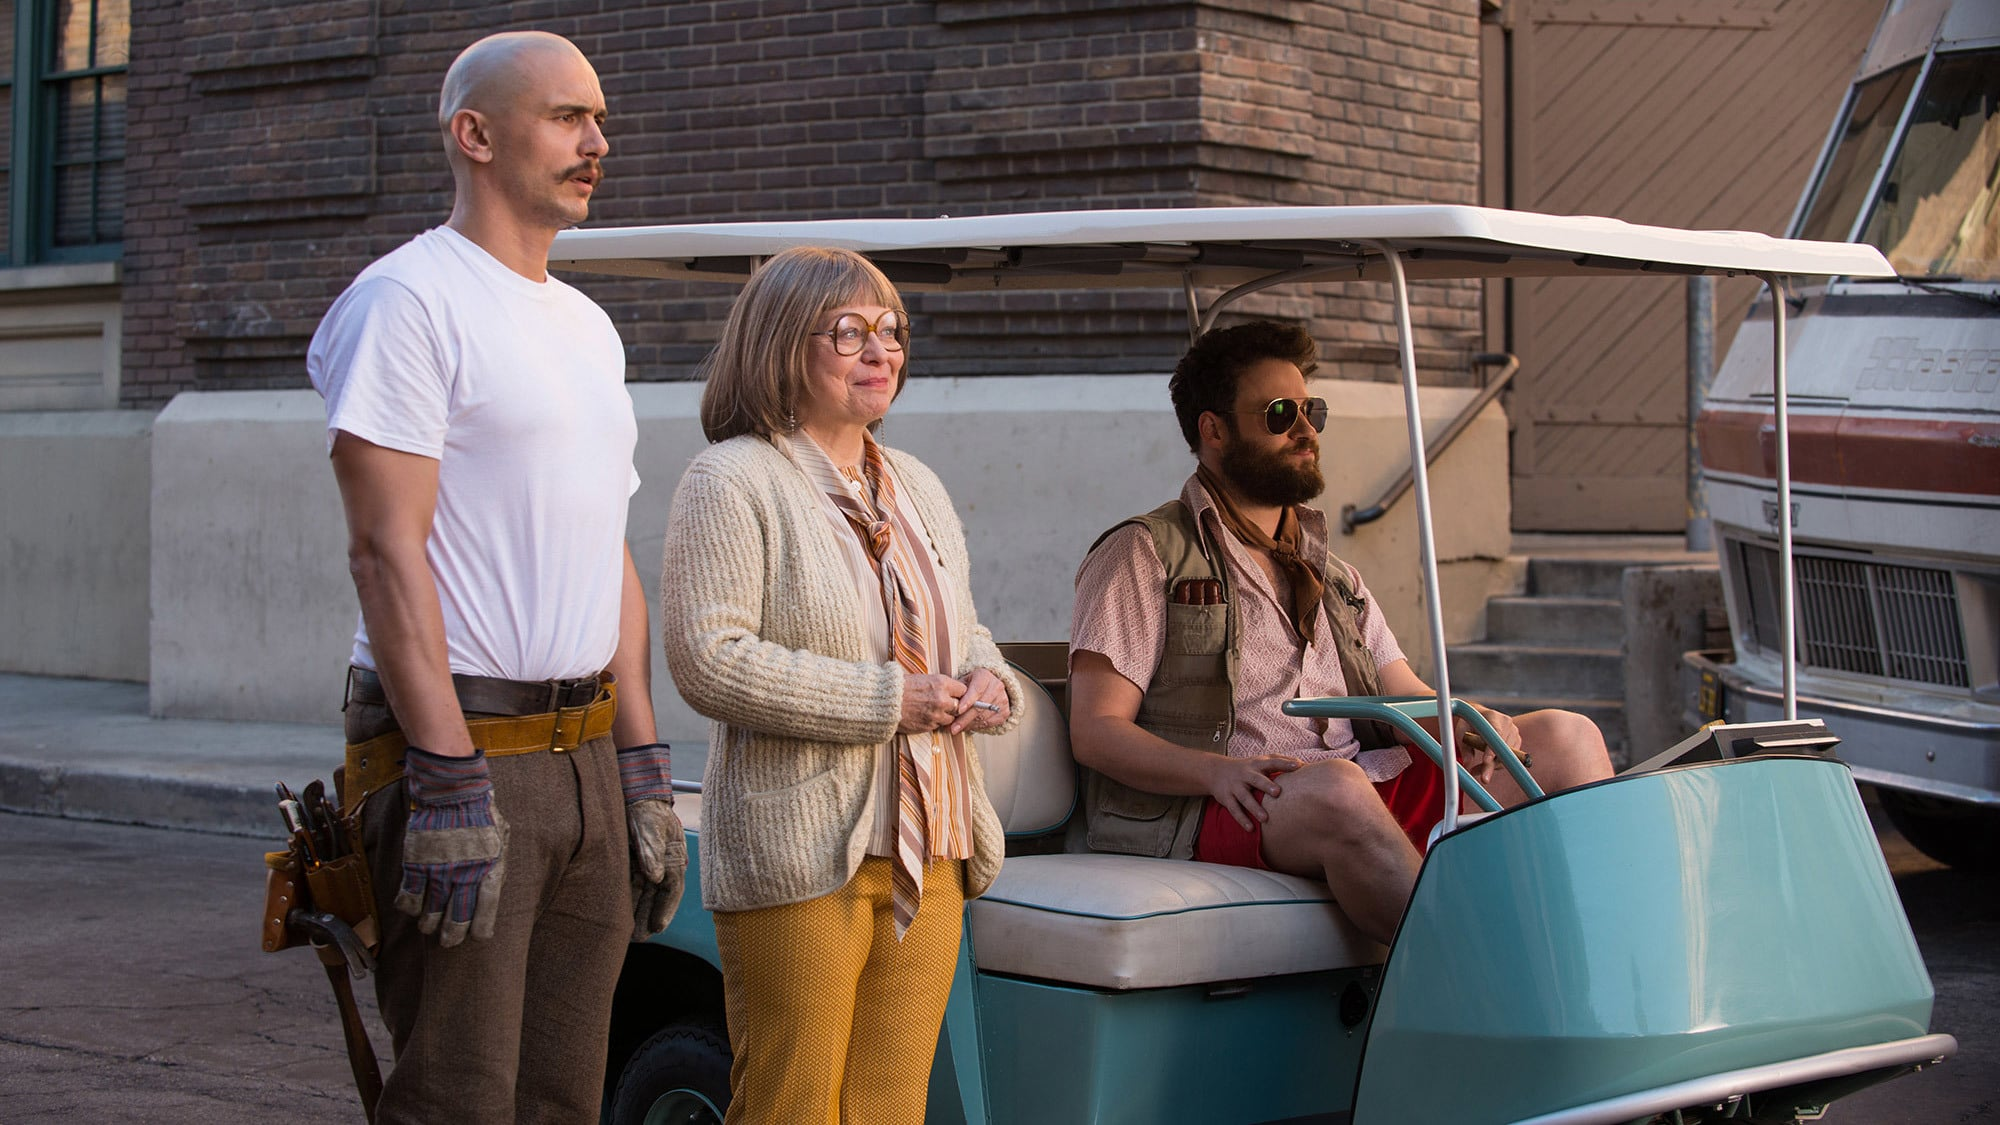 Four Years Later, James Franco's 'Zeroville' Is Finally Being Released